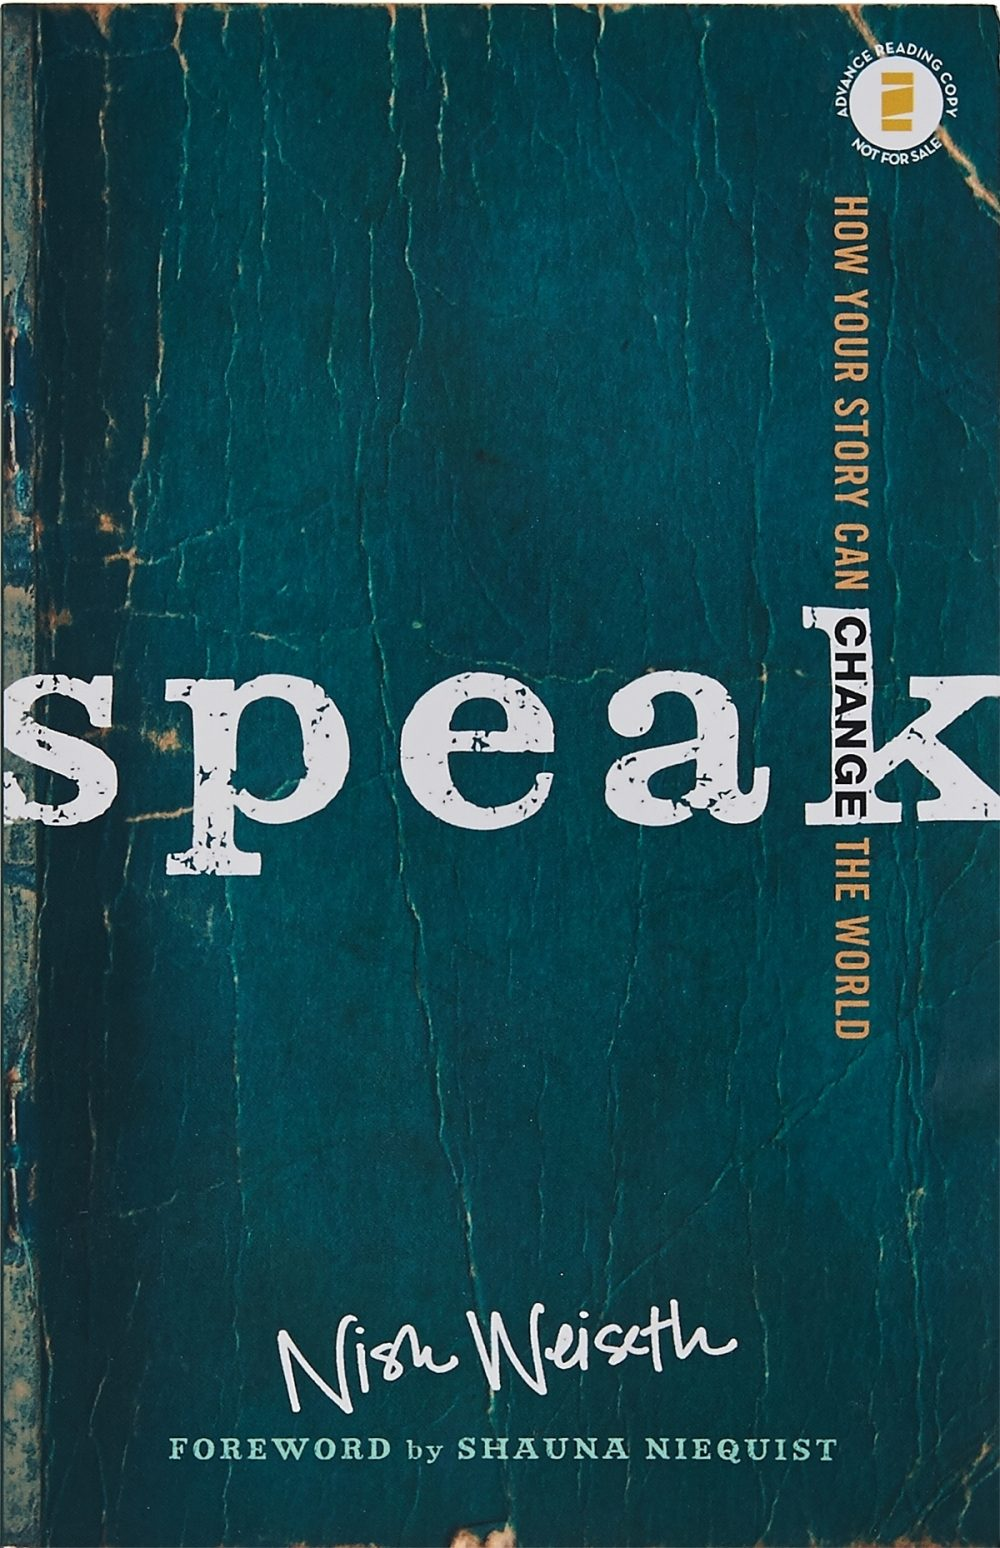 'Speak,' by Nish Weiseth demonstrates how stories can be used as tools to share glimpses of God's character, grace and love.